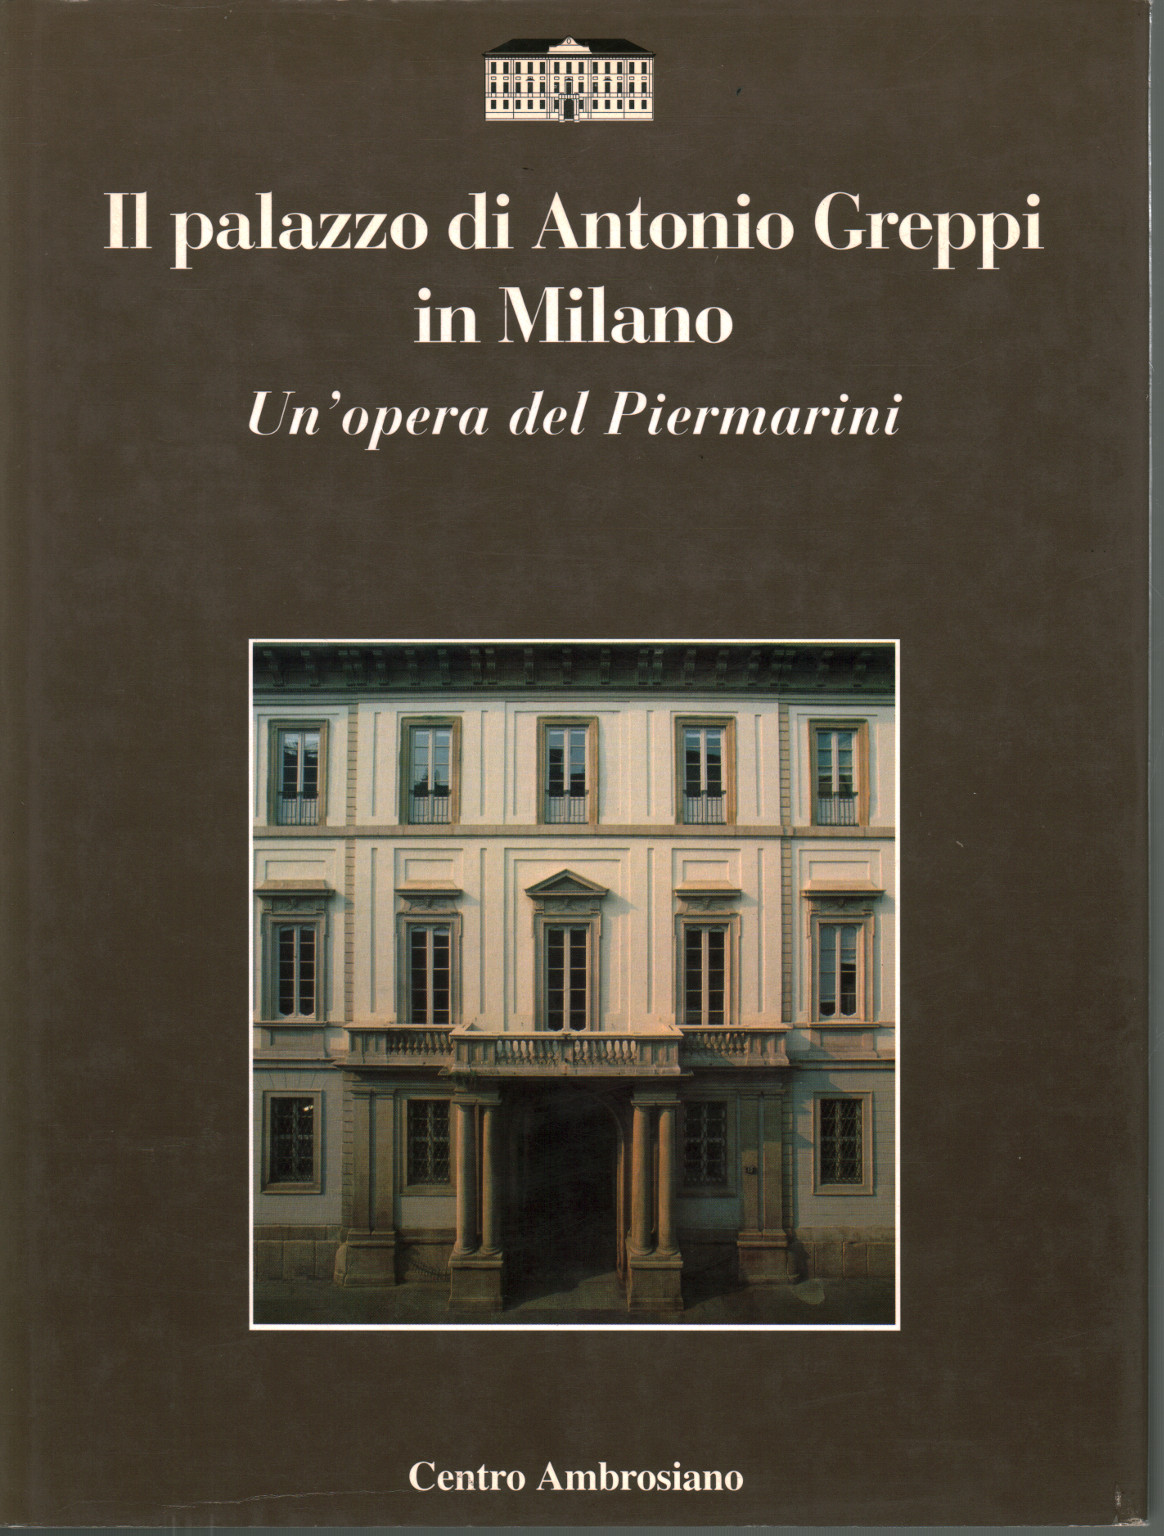 The palace of Antonio Greppi in Milan, s.a.